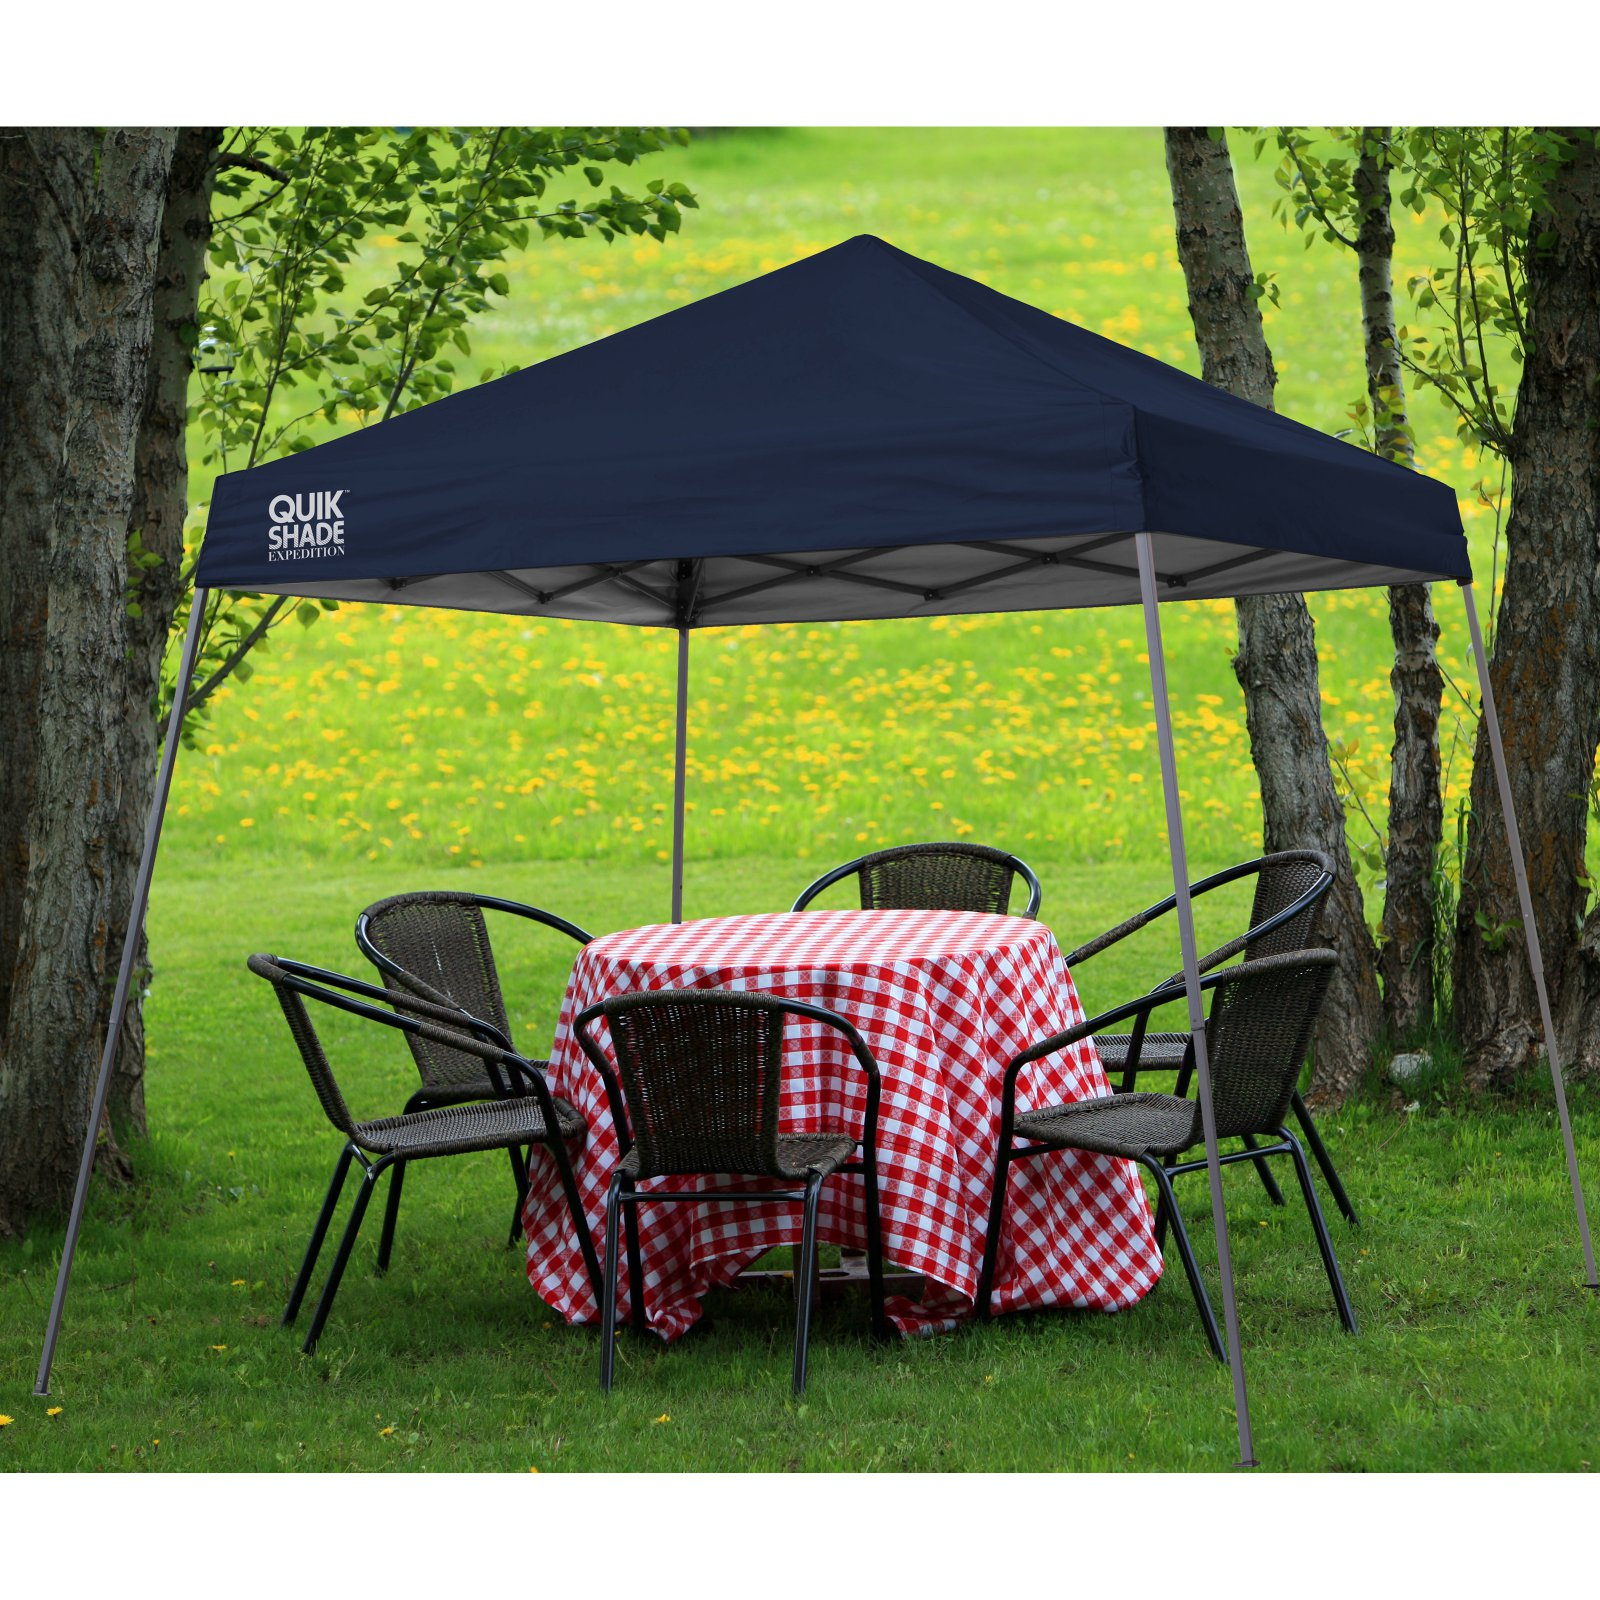 quik shade expedition 10x10 slant leg instant canopy 64 sq ft coverage walmartcom - U Shape Canopy 2015